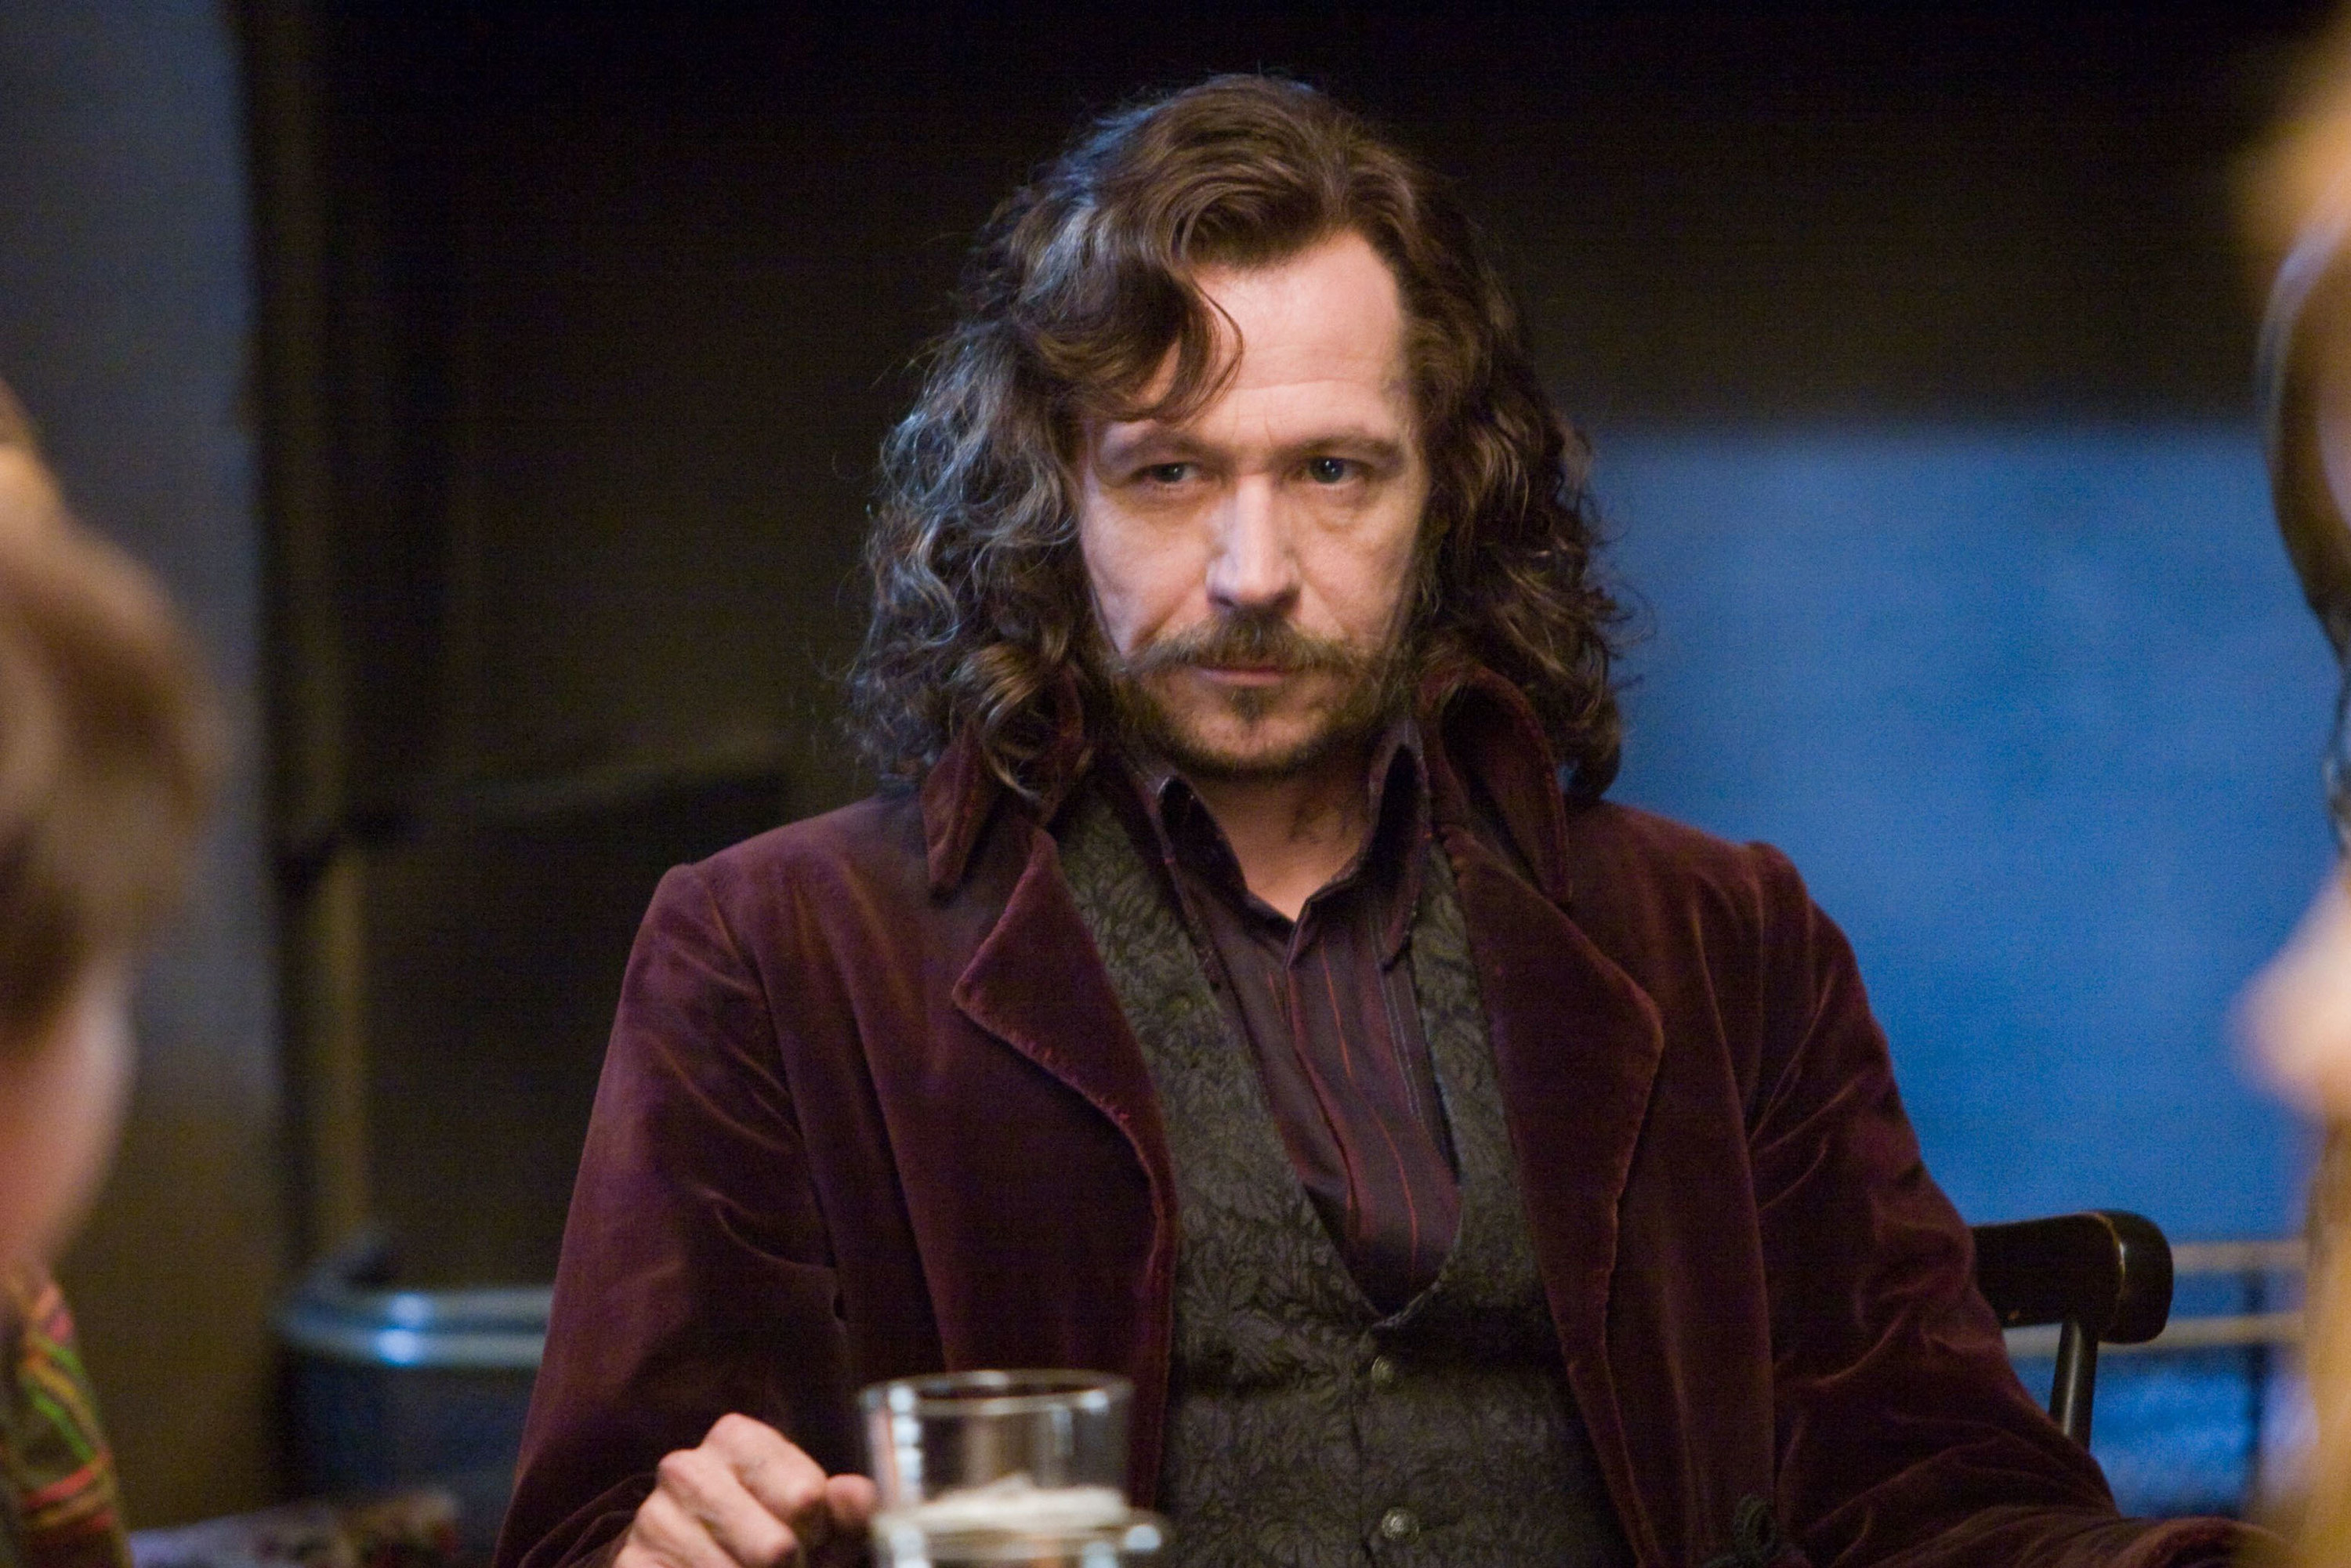 Gary Oldman sits at a table while looking at another character with a glass in front of him